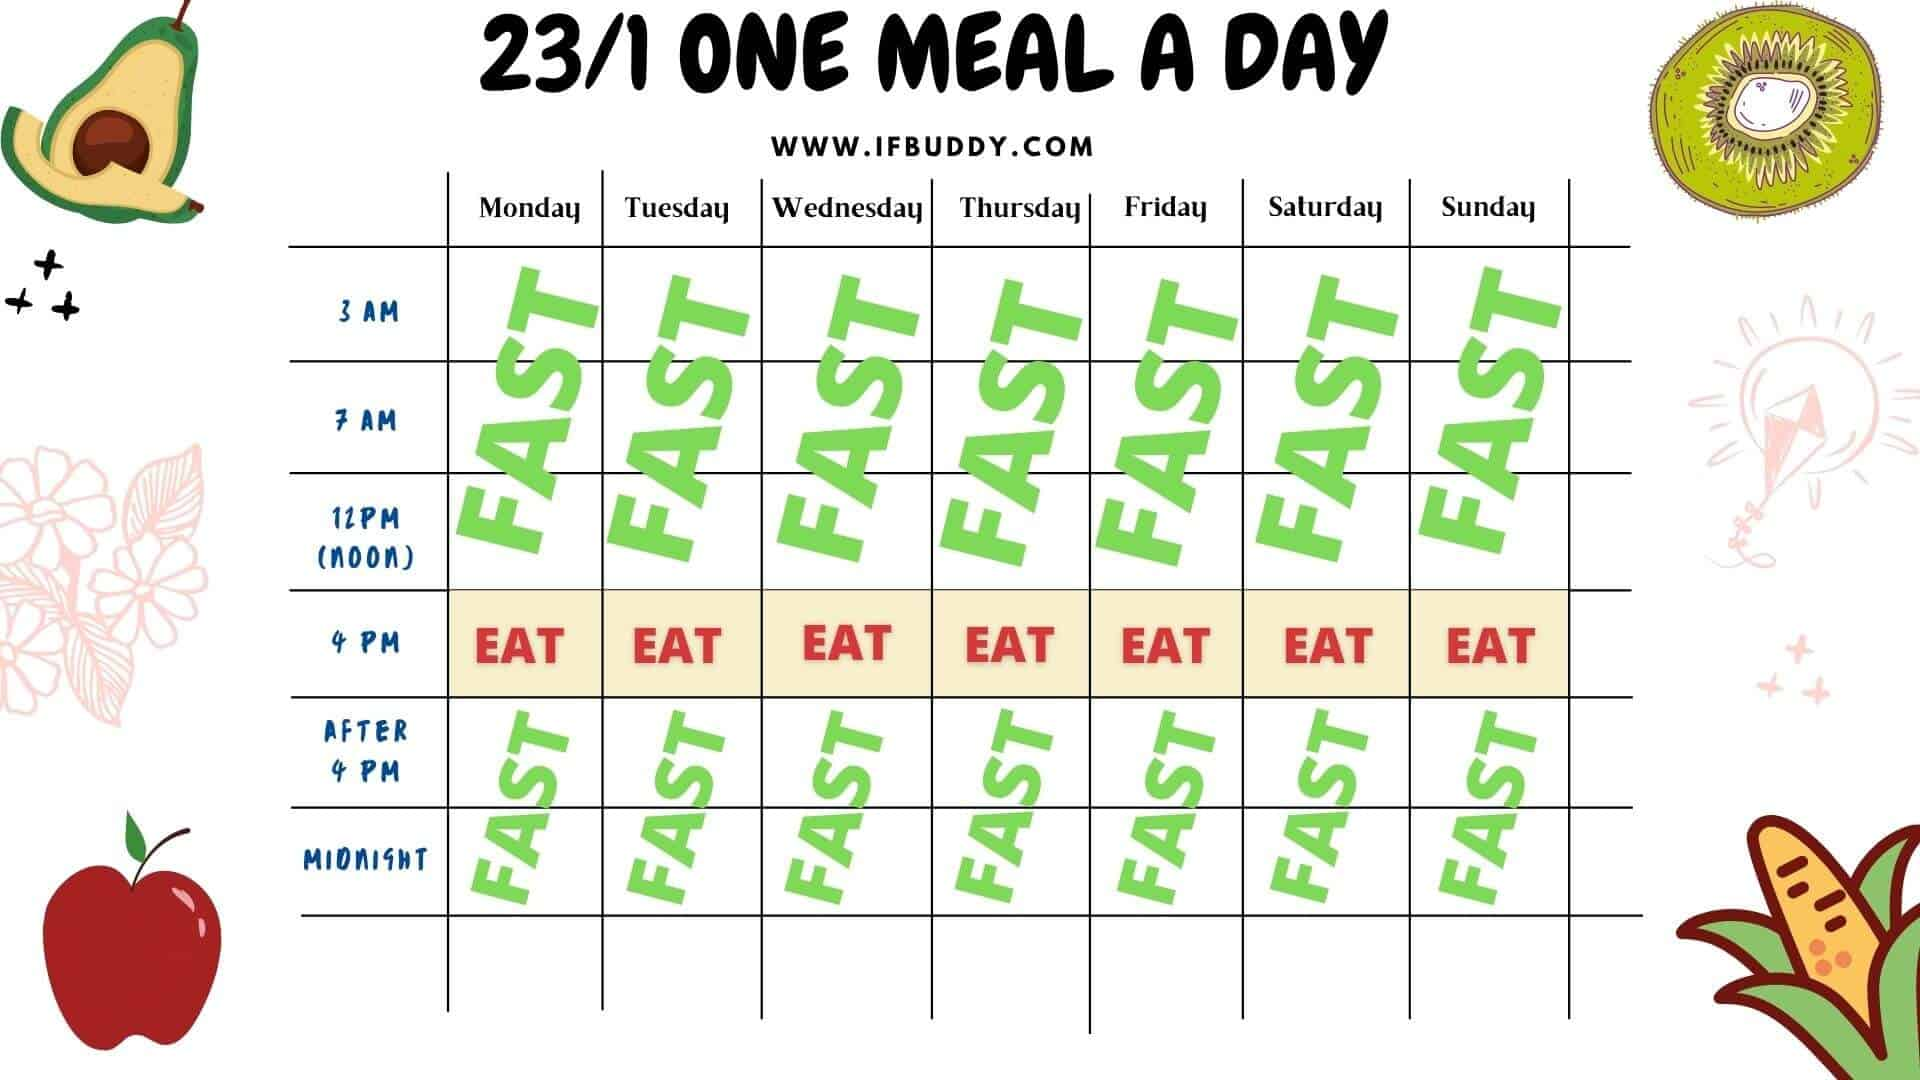 23-1 One Meal A Day